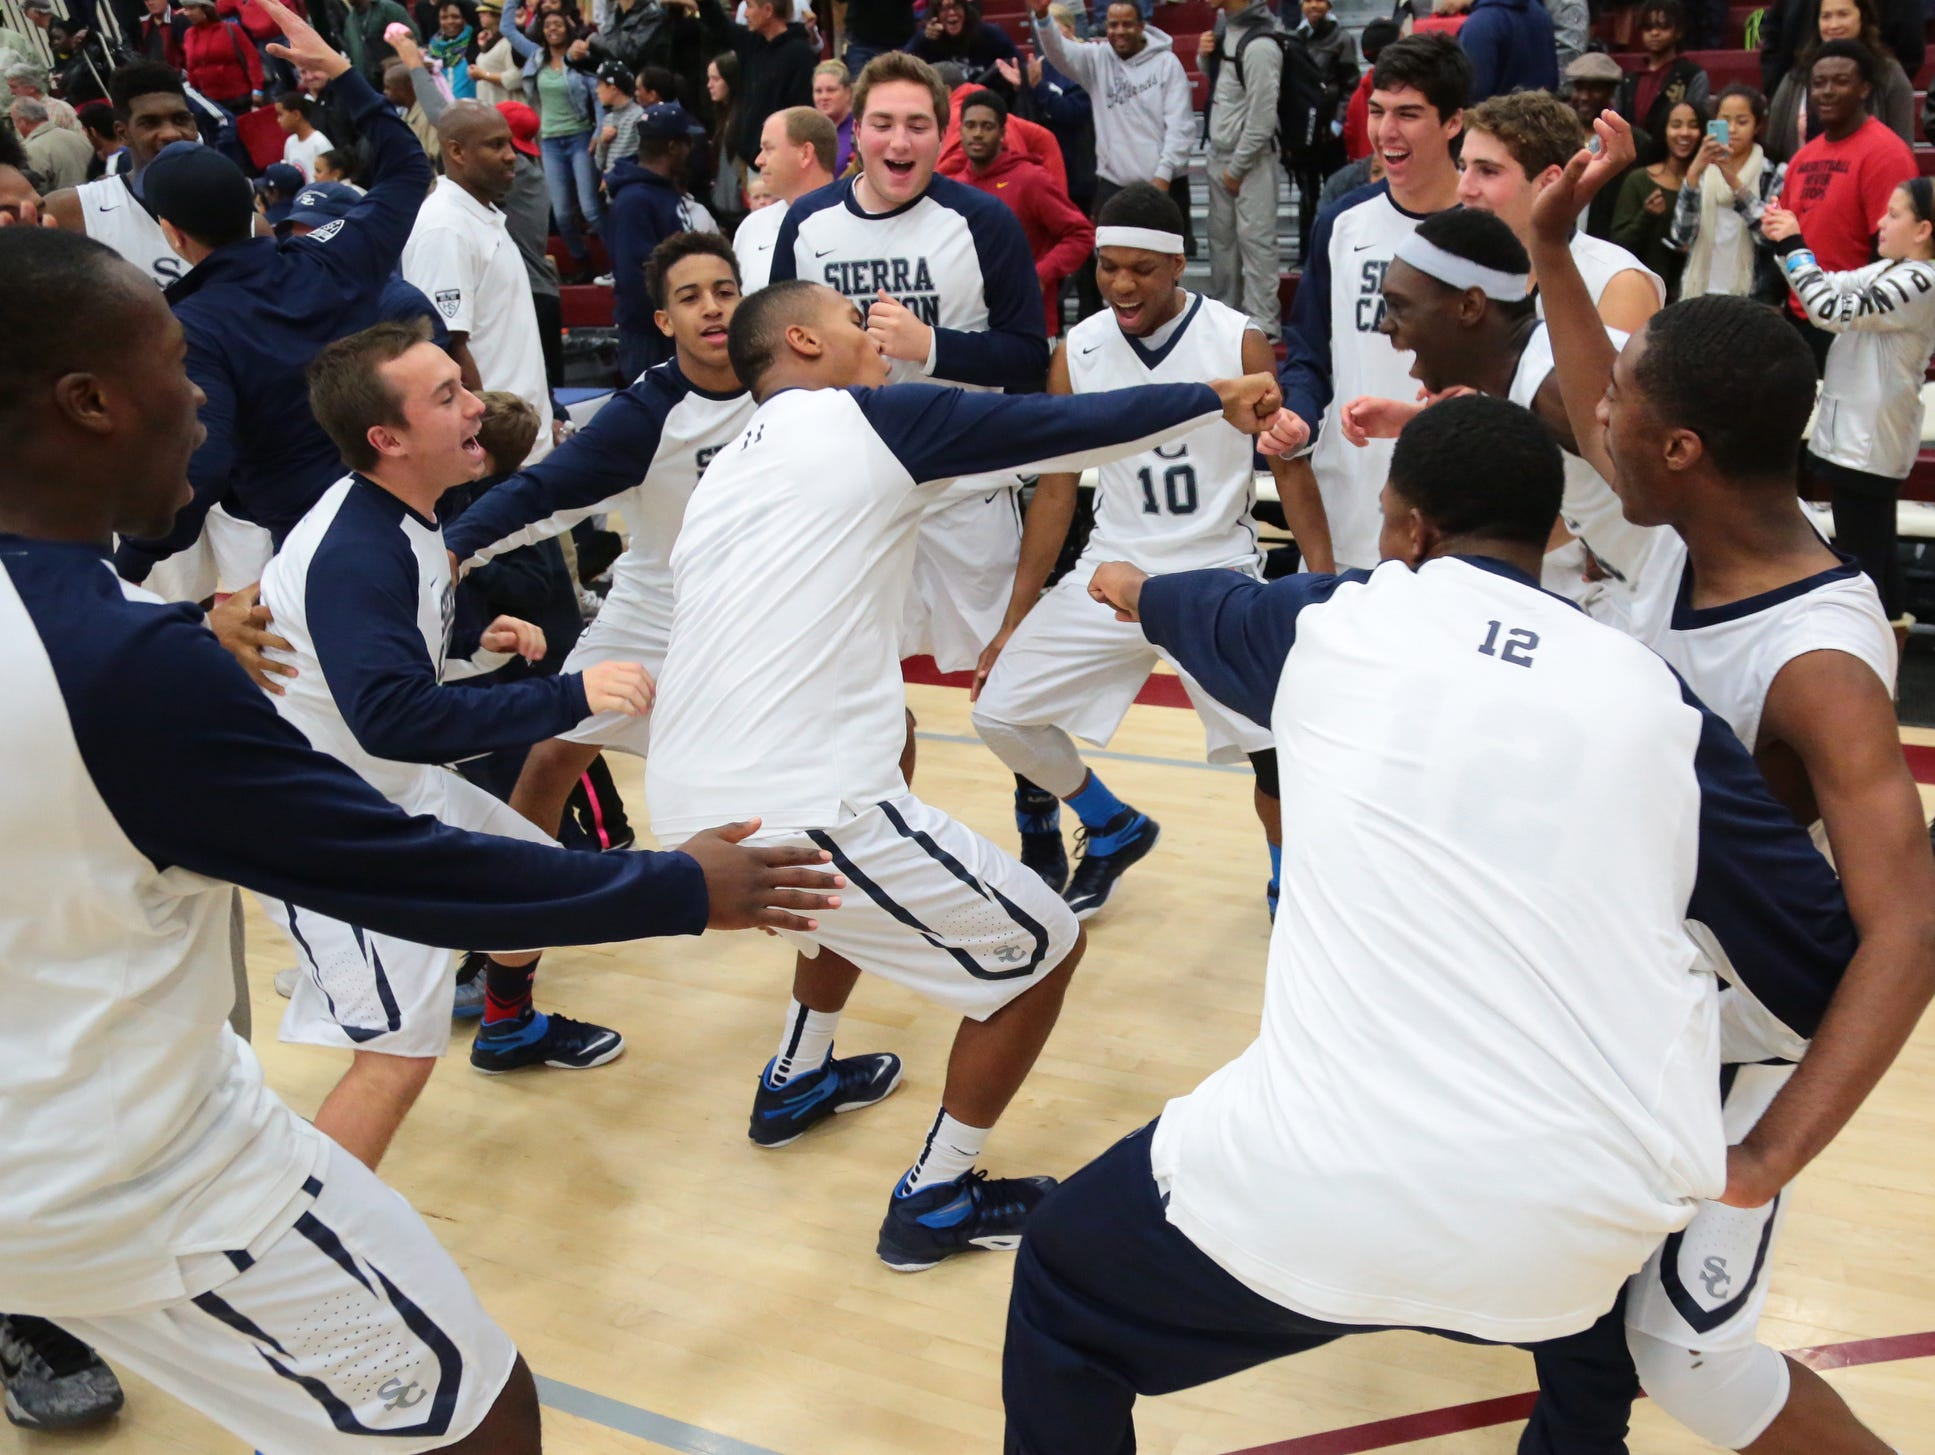 Sierra Canyon players celebrate their last-second win over Pebblebrook during the Open Division championship game of the 2014 MaxPreps Holiday Classic.